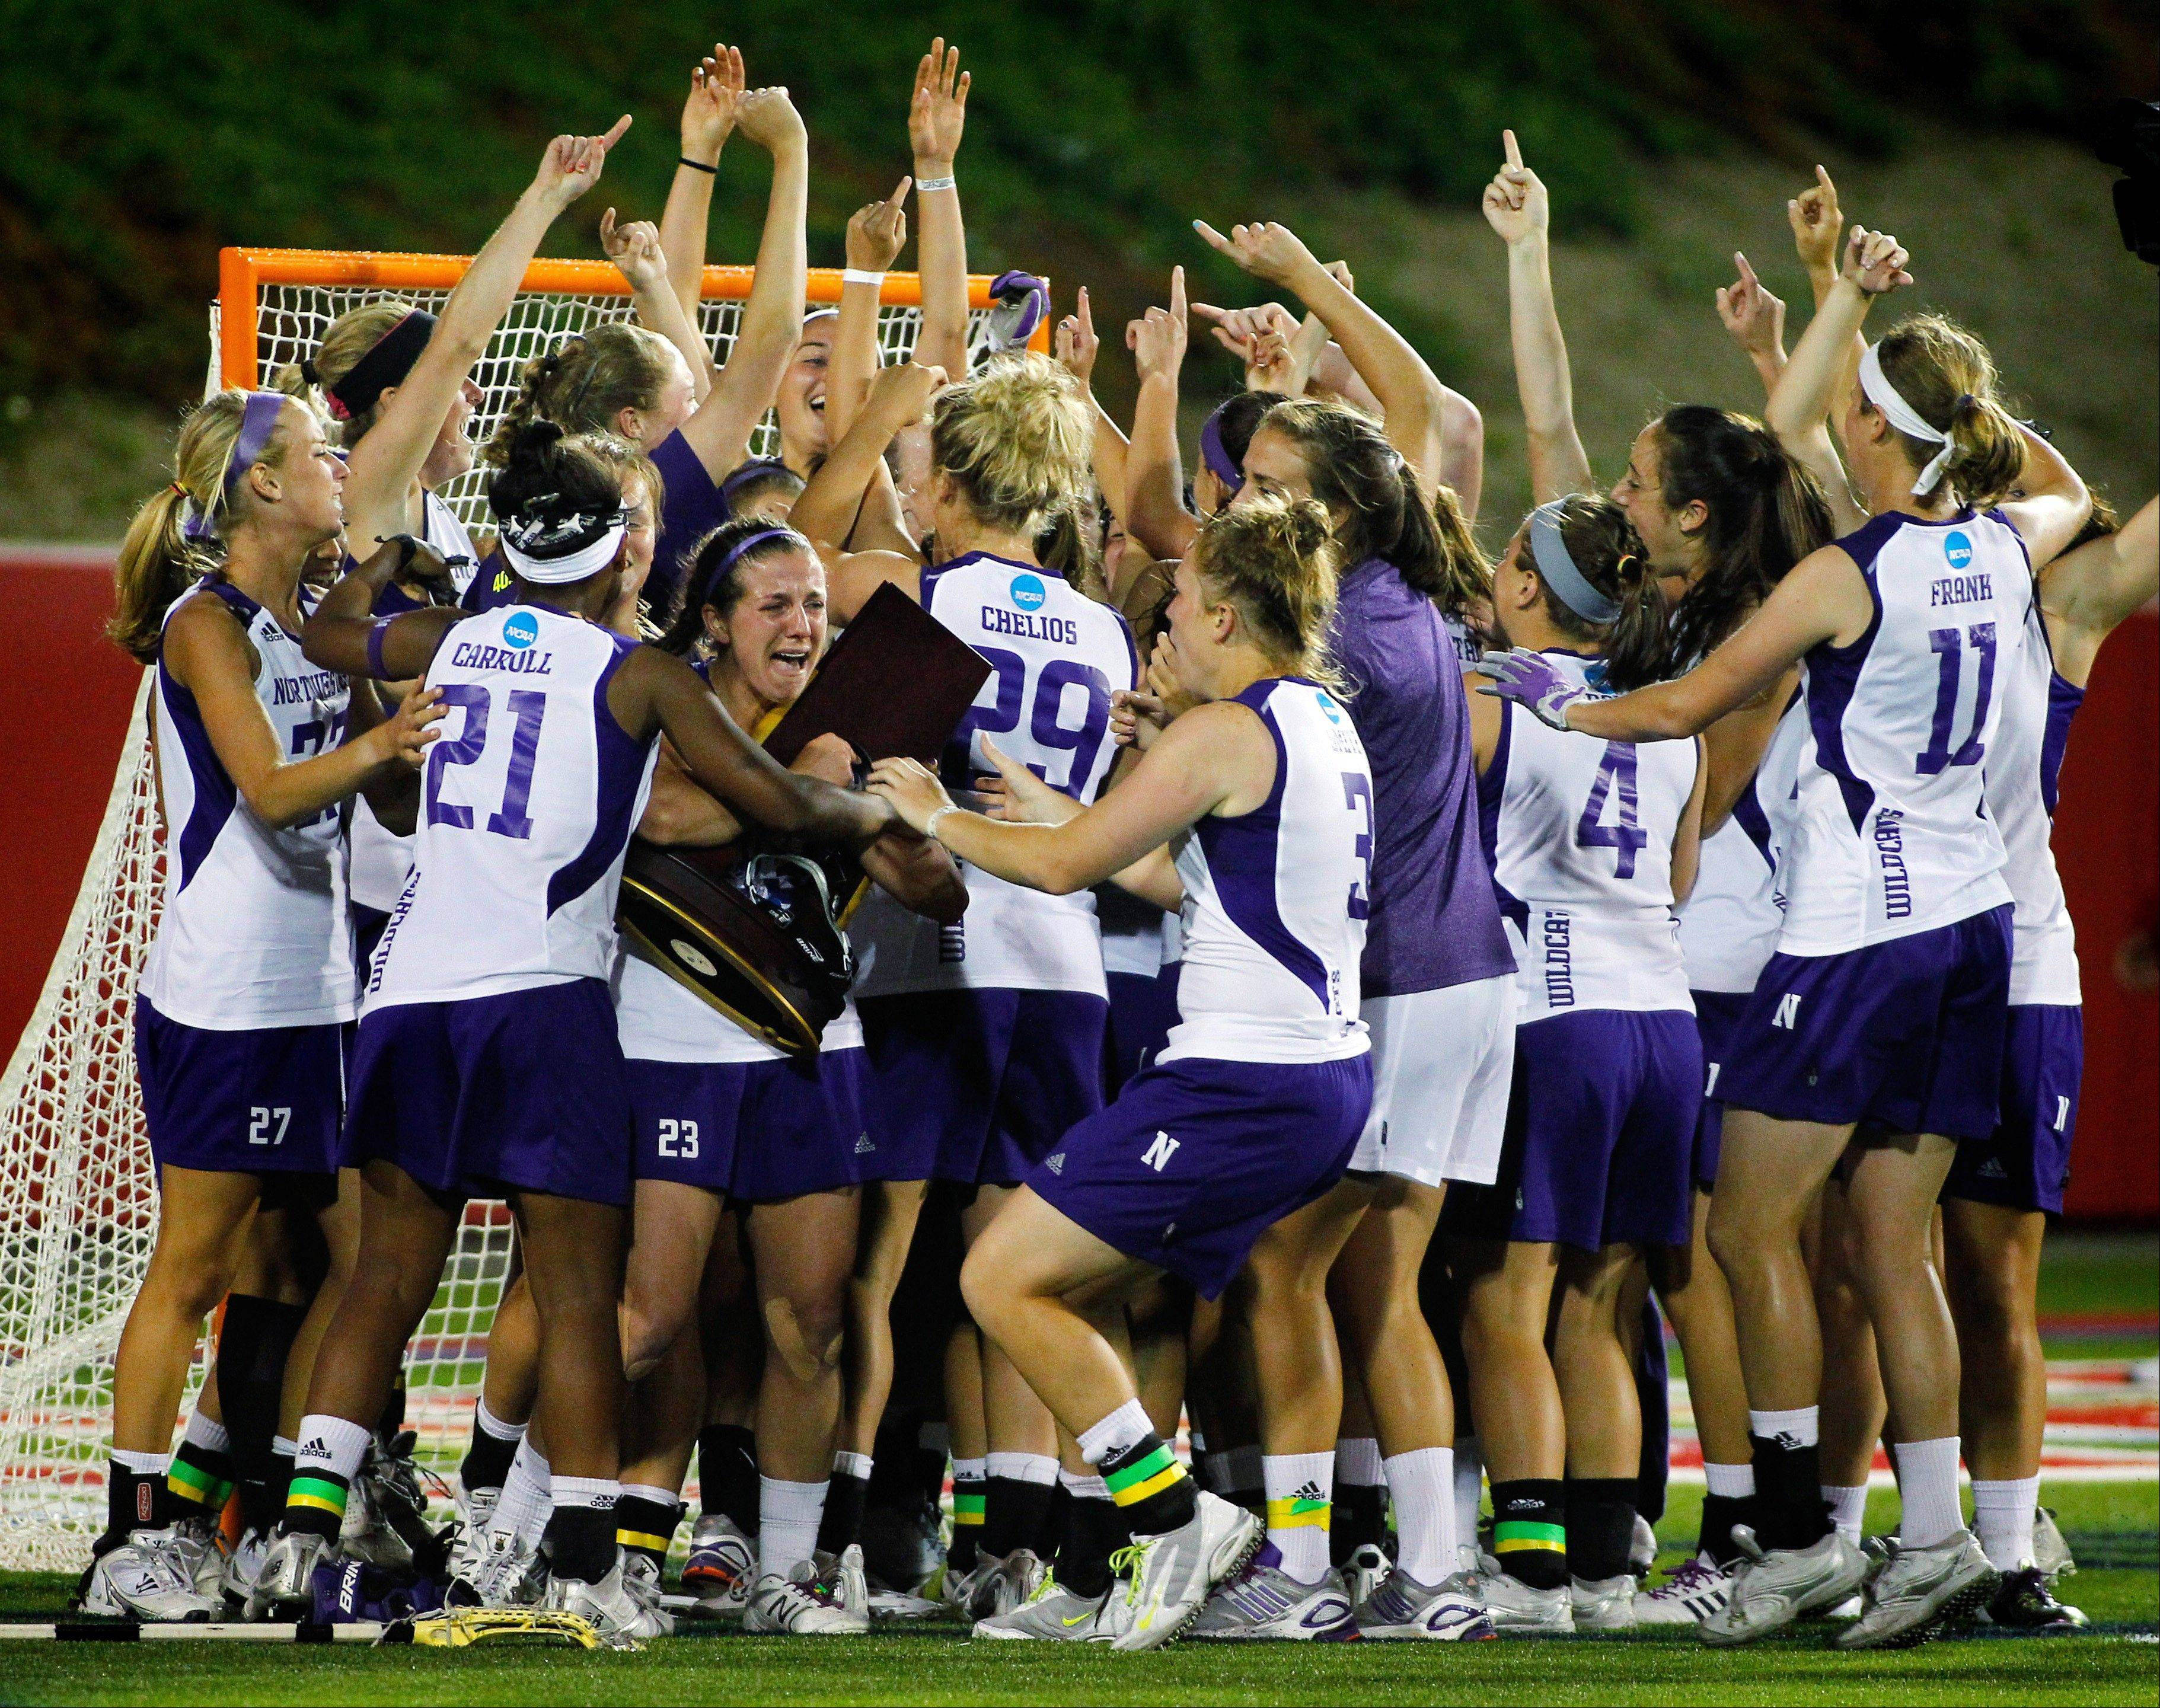 The Big Ten has given conference status to lacrosse for the 2014 men's and women's seasons. Northwestern, which has won seven national titles in women's lacrosse, will welcome Maryland and Rutgers to the conference in 2014, and Michigan will be adding lacrosse for men's and women's play. On the men's side, Johns University also will be included as a conference member in lacrosse only.